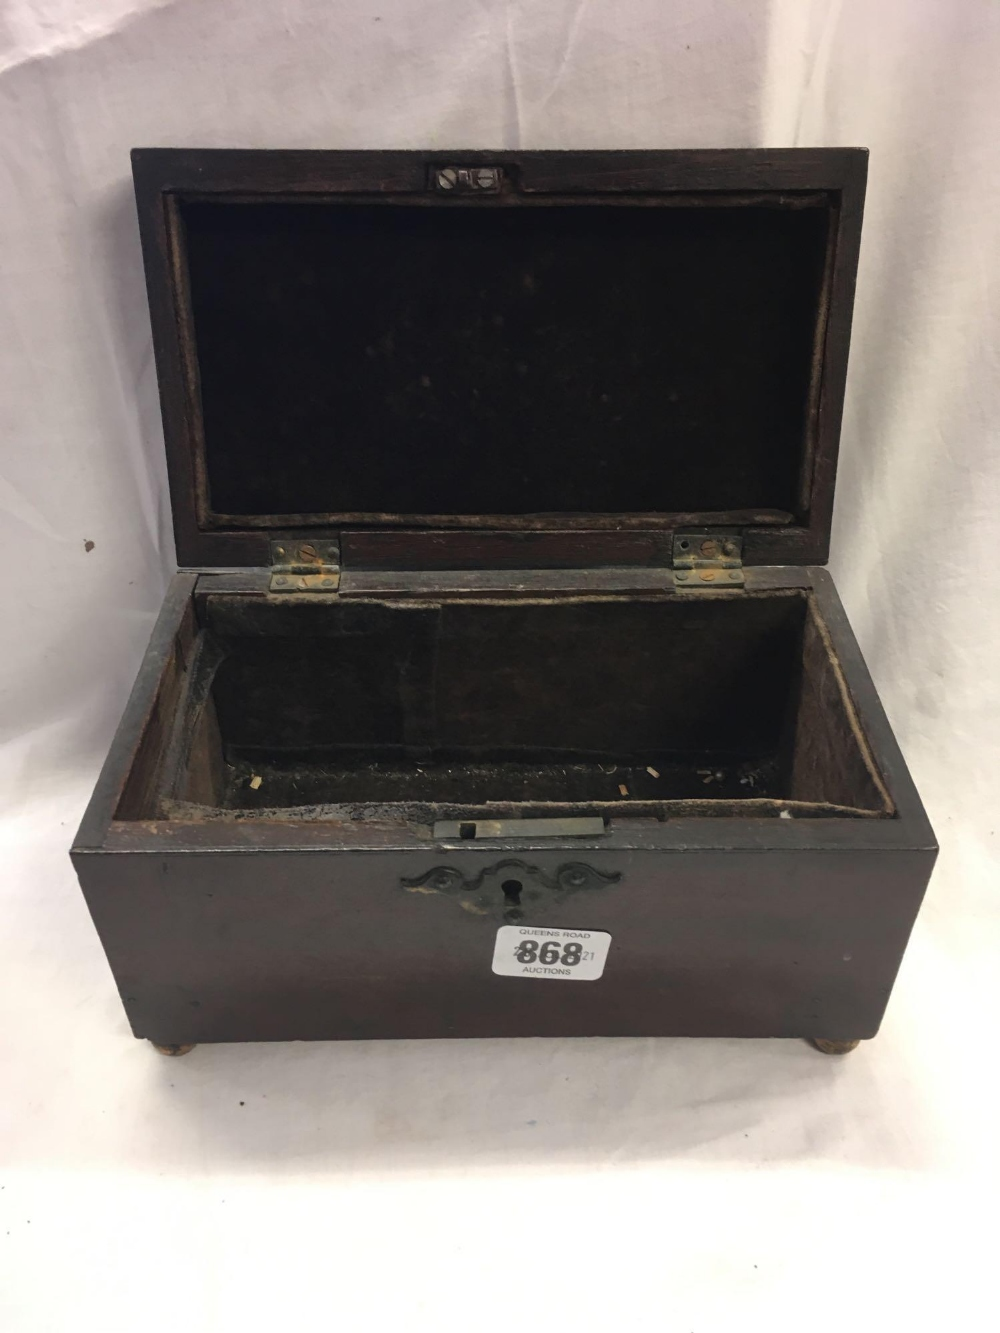 TWO WOODEN CASKETS - 1 INCL; VARIOUS EMPTY PURSES - Image 3 of 6